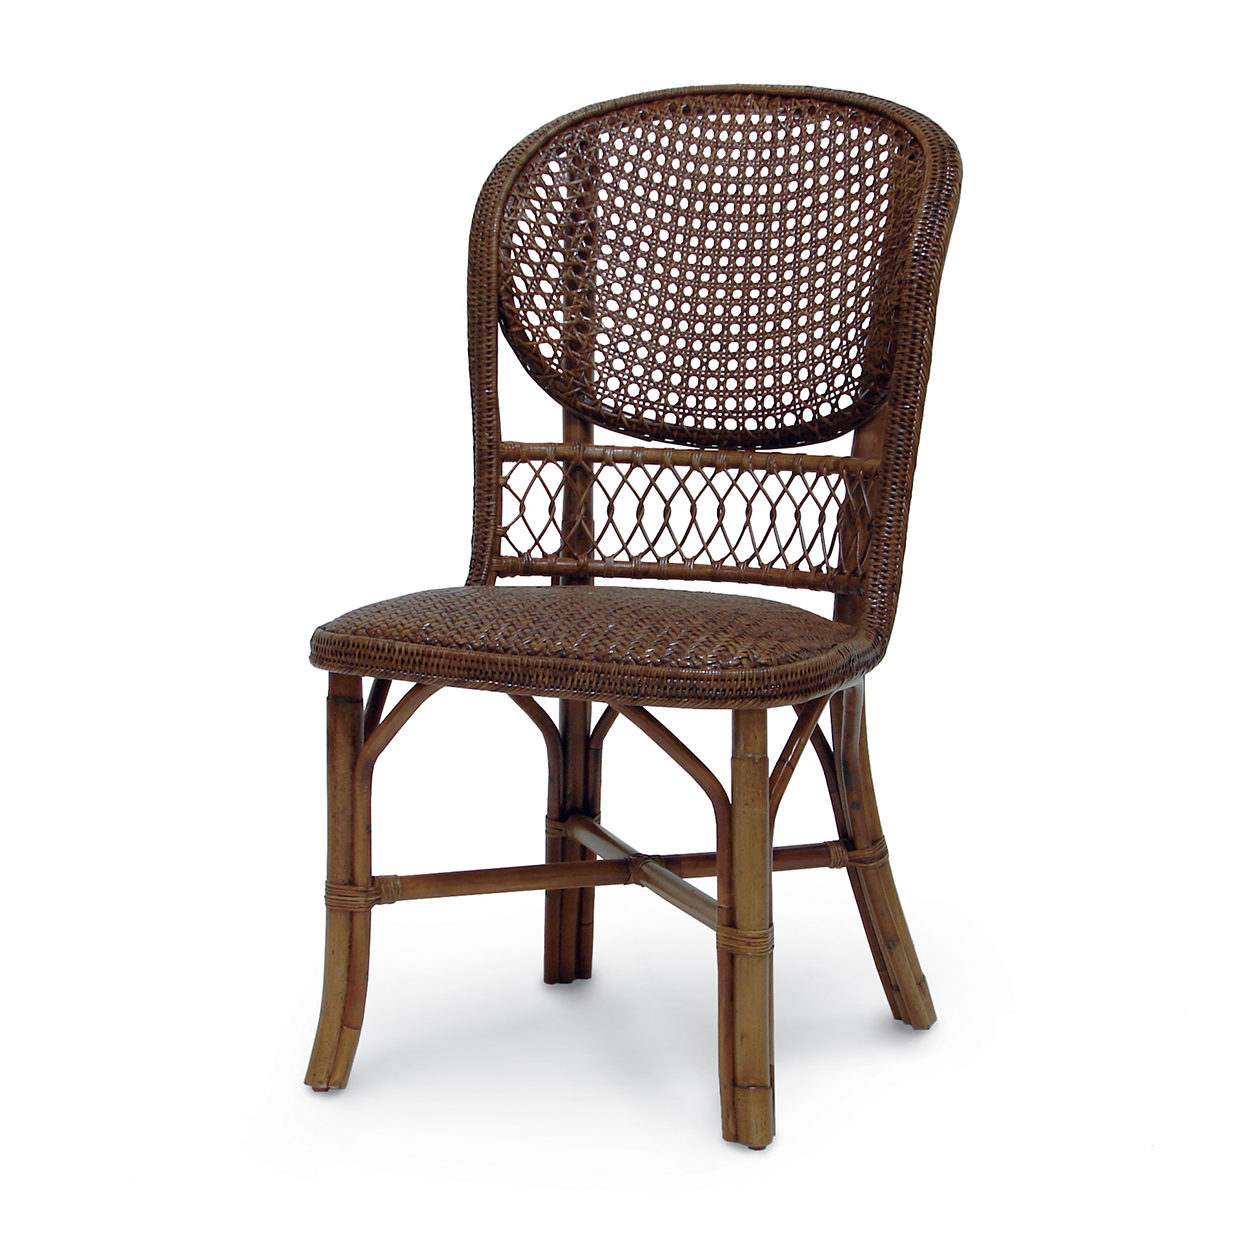 antique cane chairs rocking chair old fashioned palecek